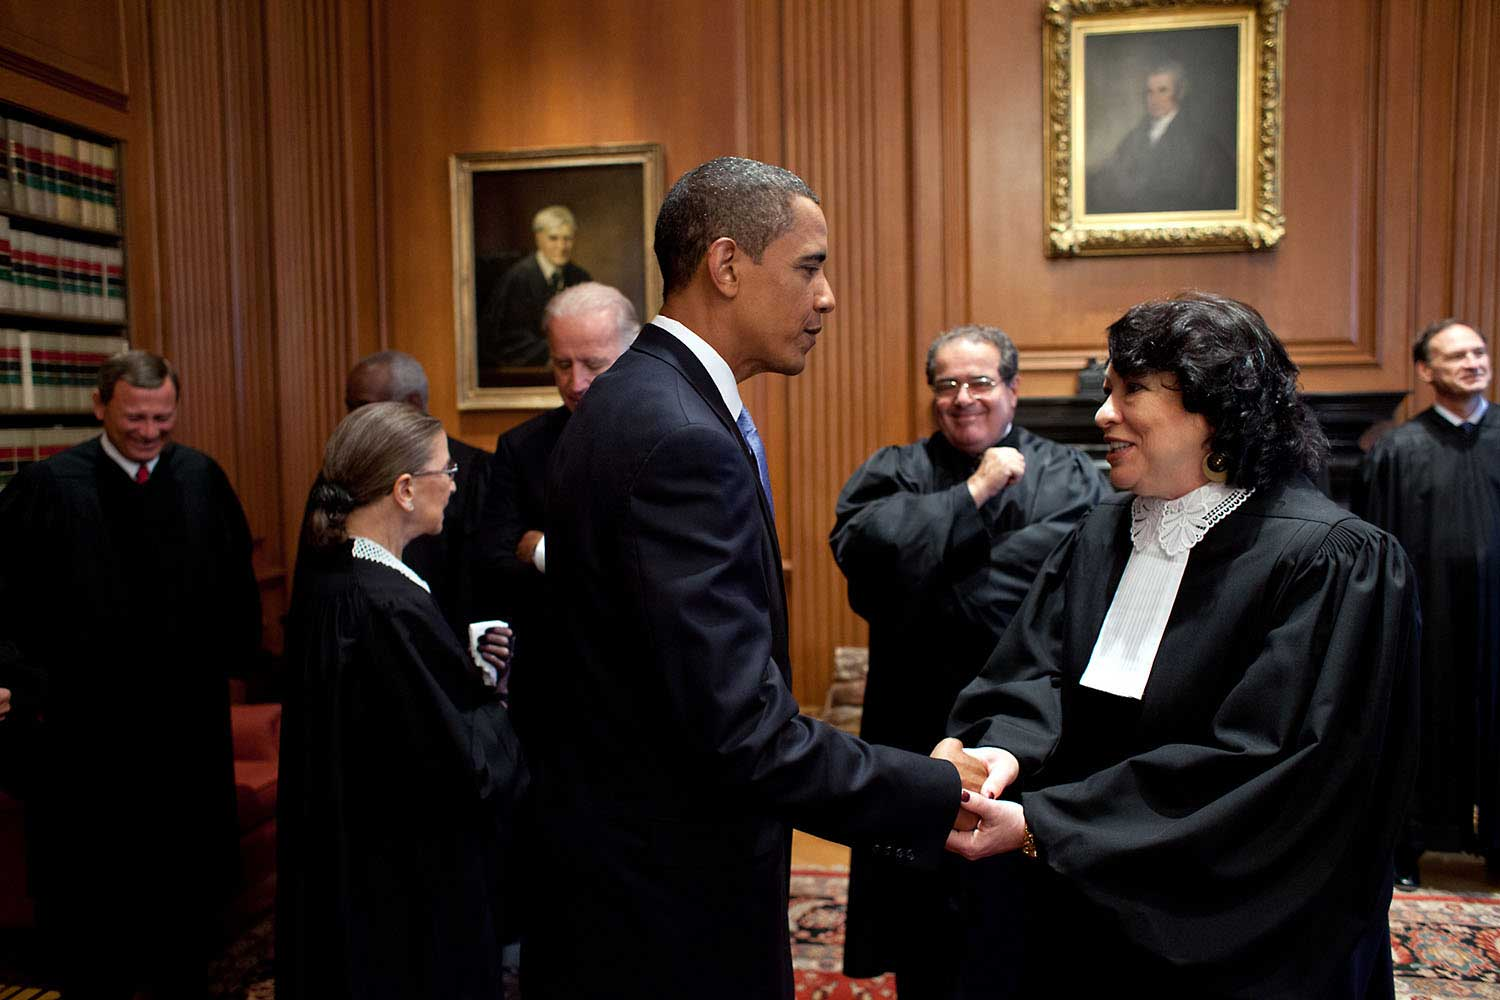 President Obama greets Sonia Sotomayor prior to her Investiture as an Associate Justice at the U.S. Supreme Court, Sept. 8, 2009.